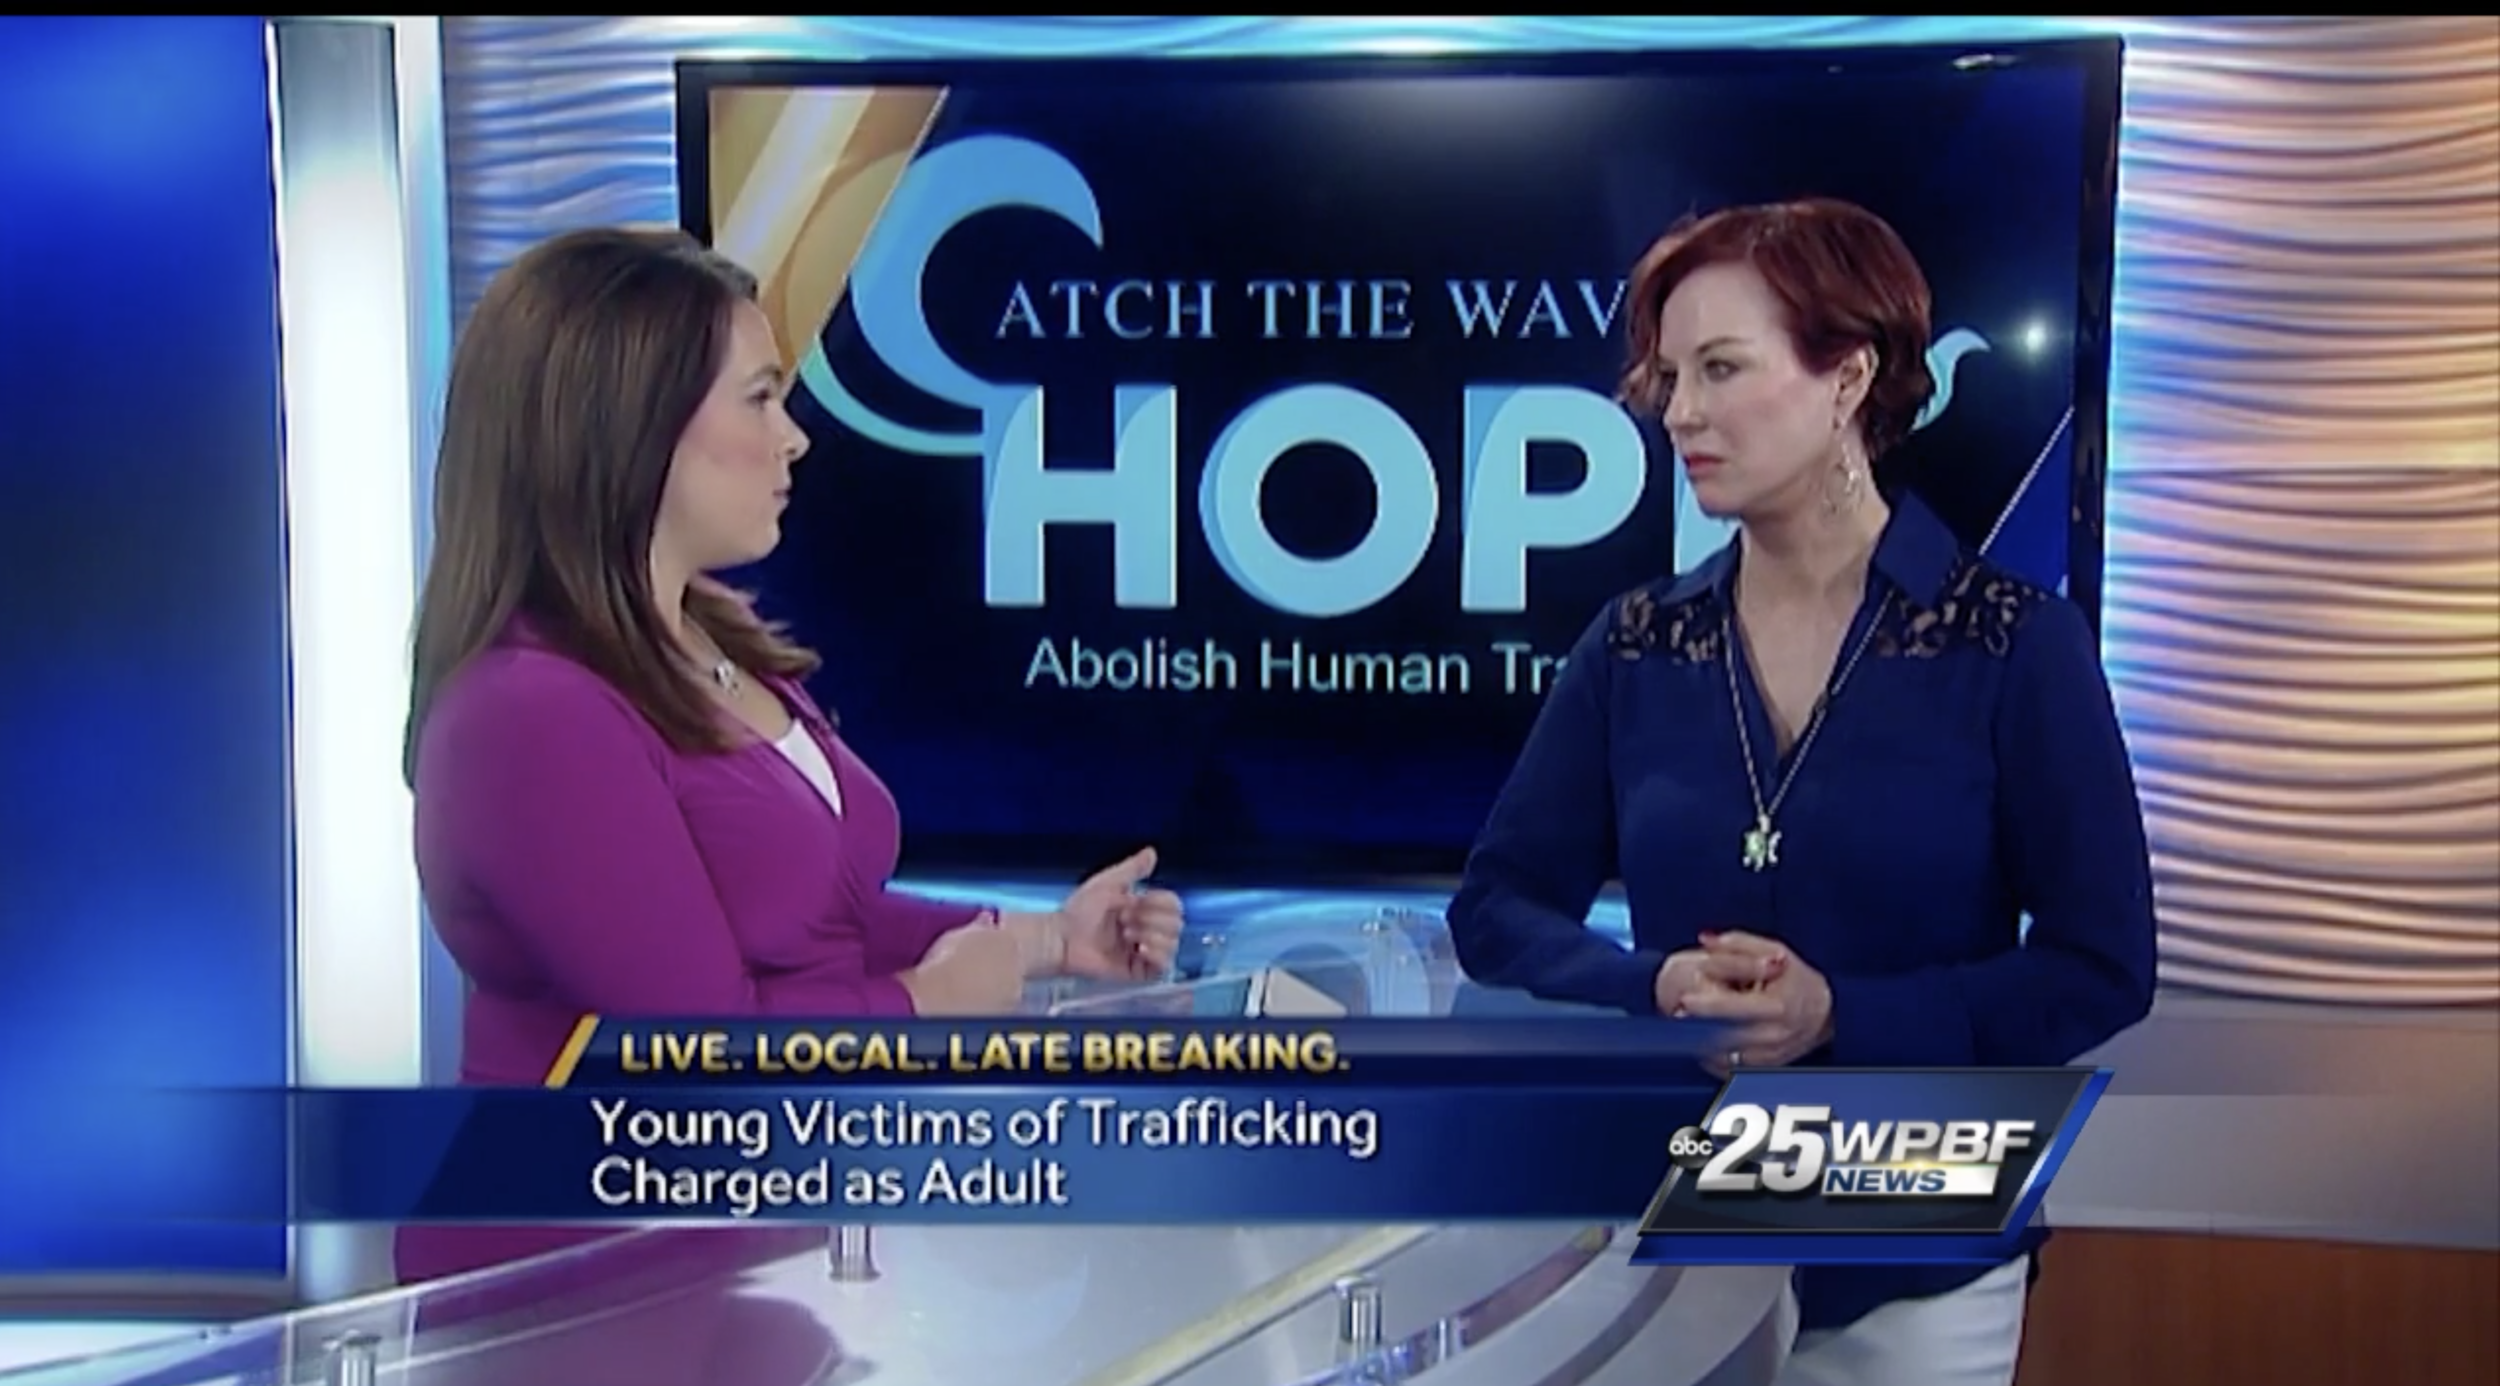 Press/Media — Catch the Wave of Hope — Abolish Human Trafficking